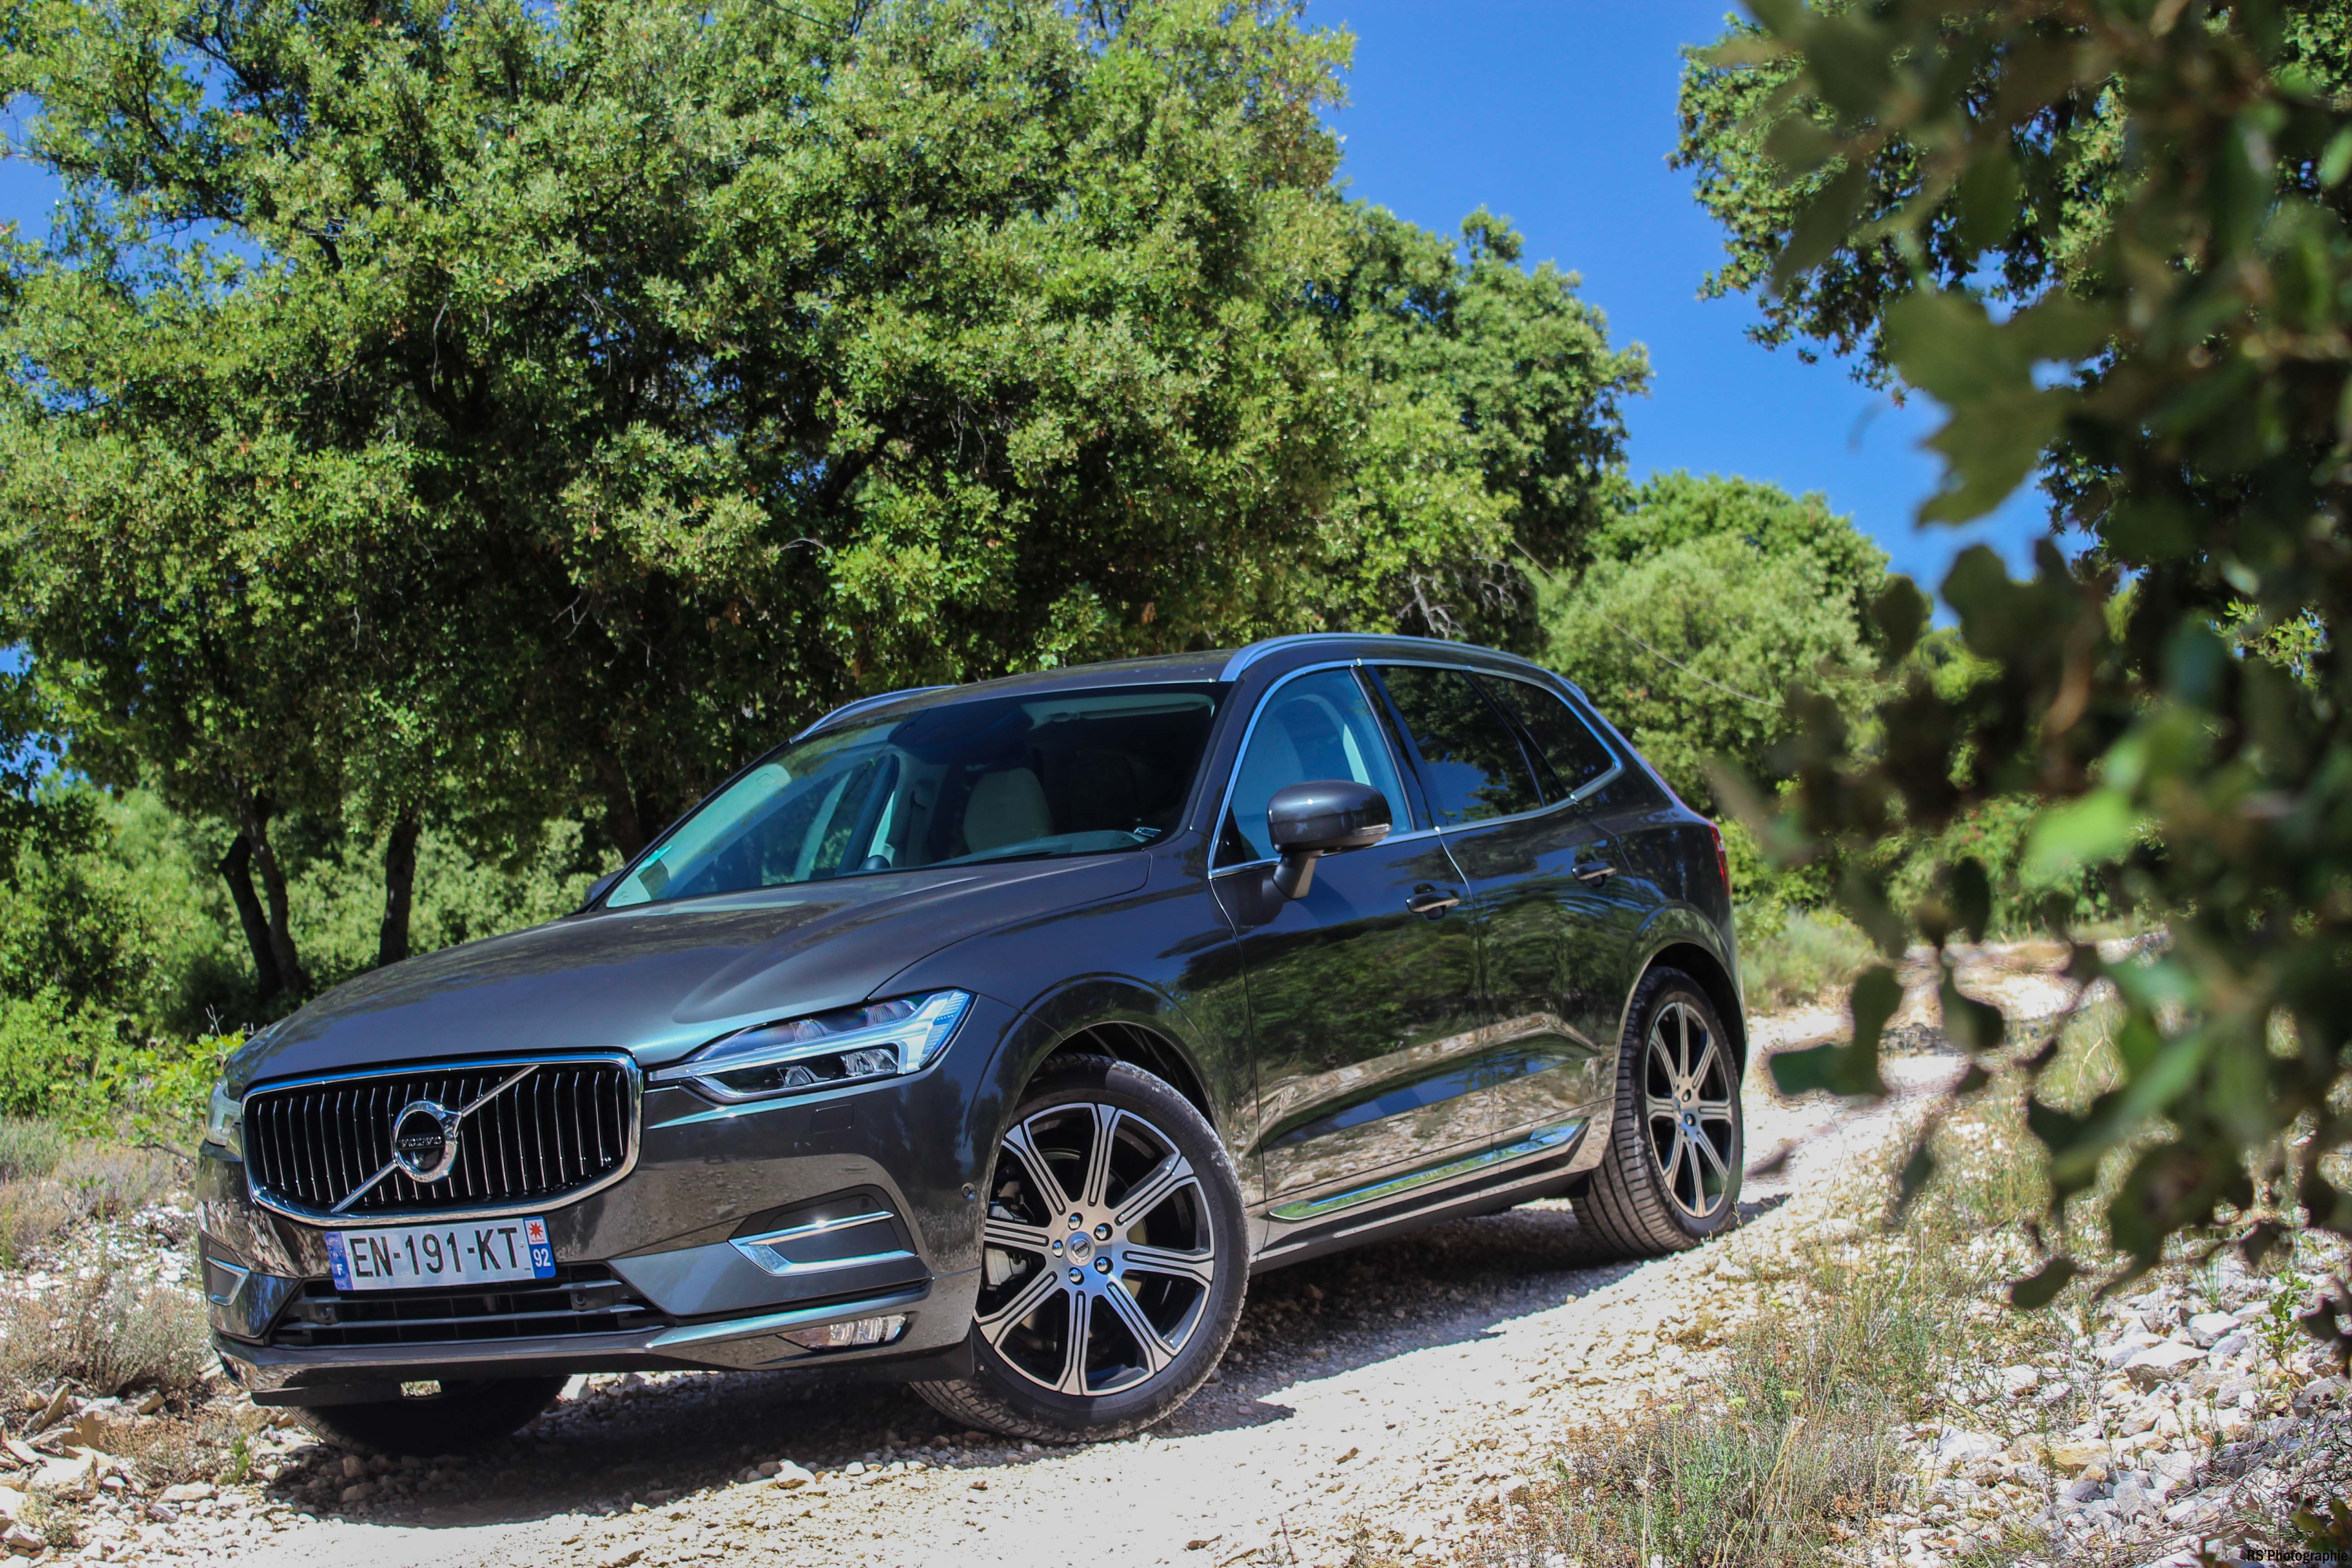 OpéVolvo47-volvo-xc60-avant-front-Arnaud Demasier-RSPhotographie